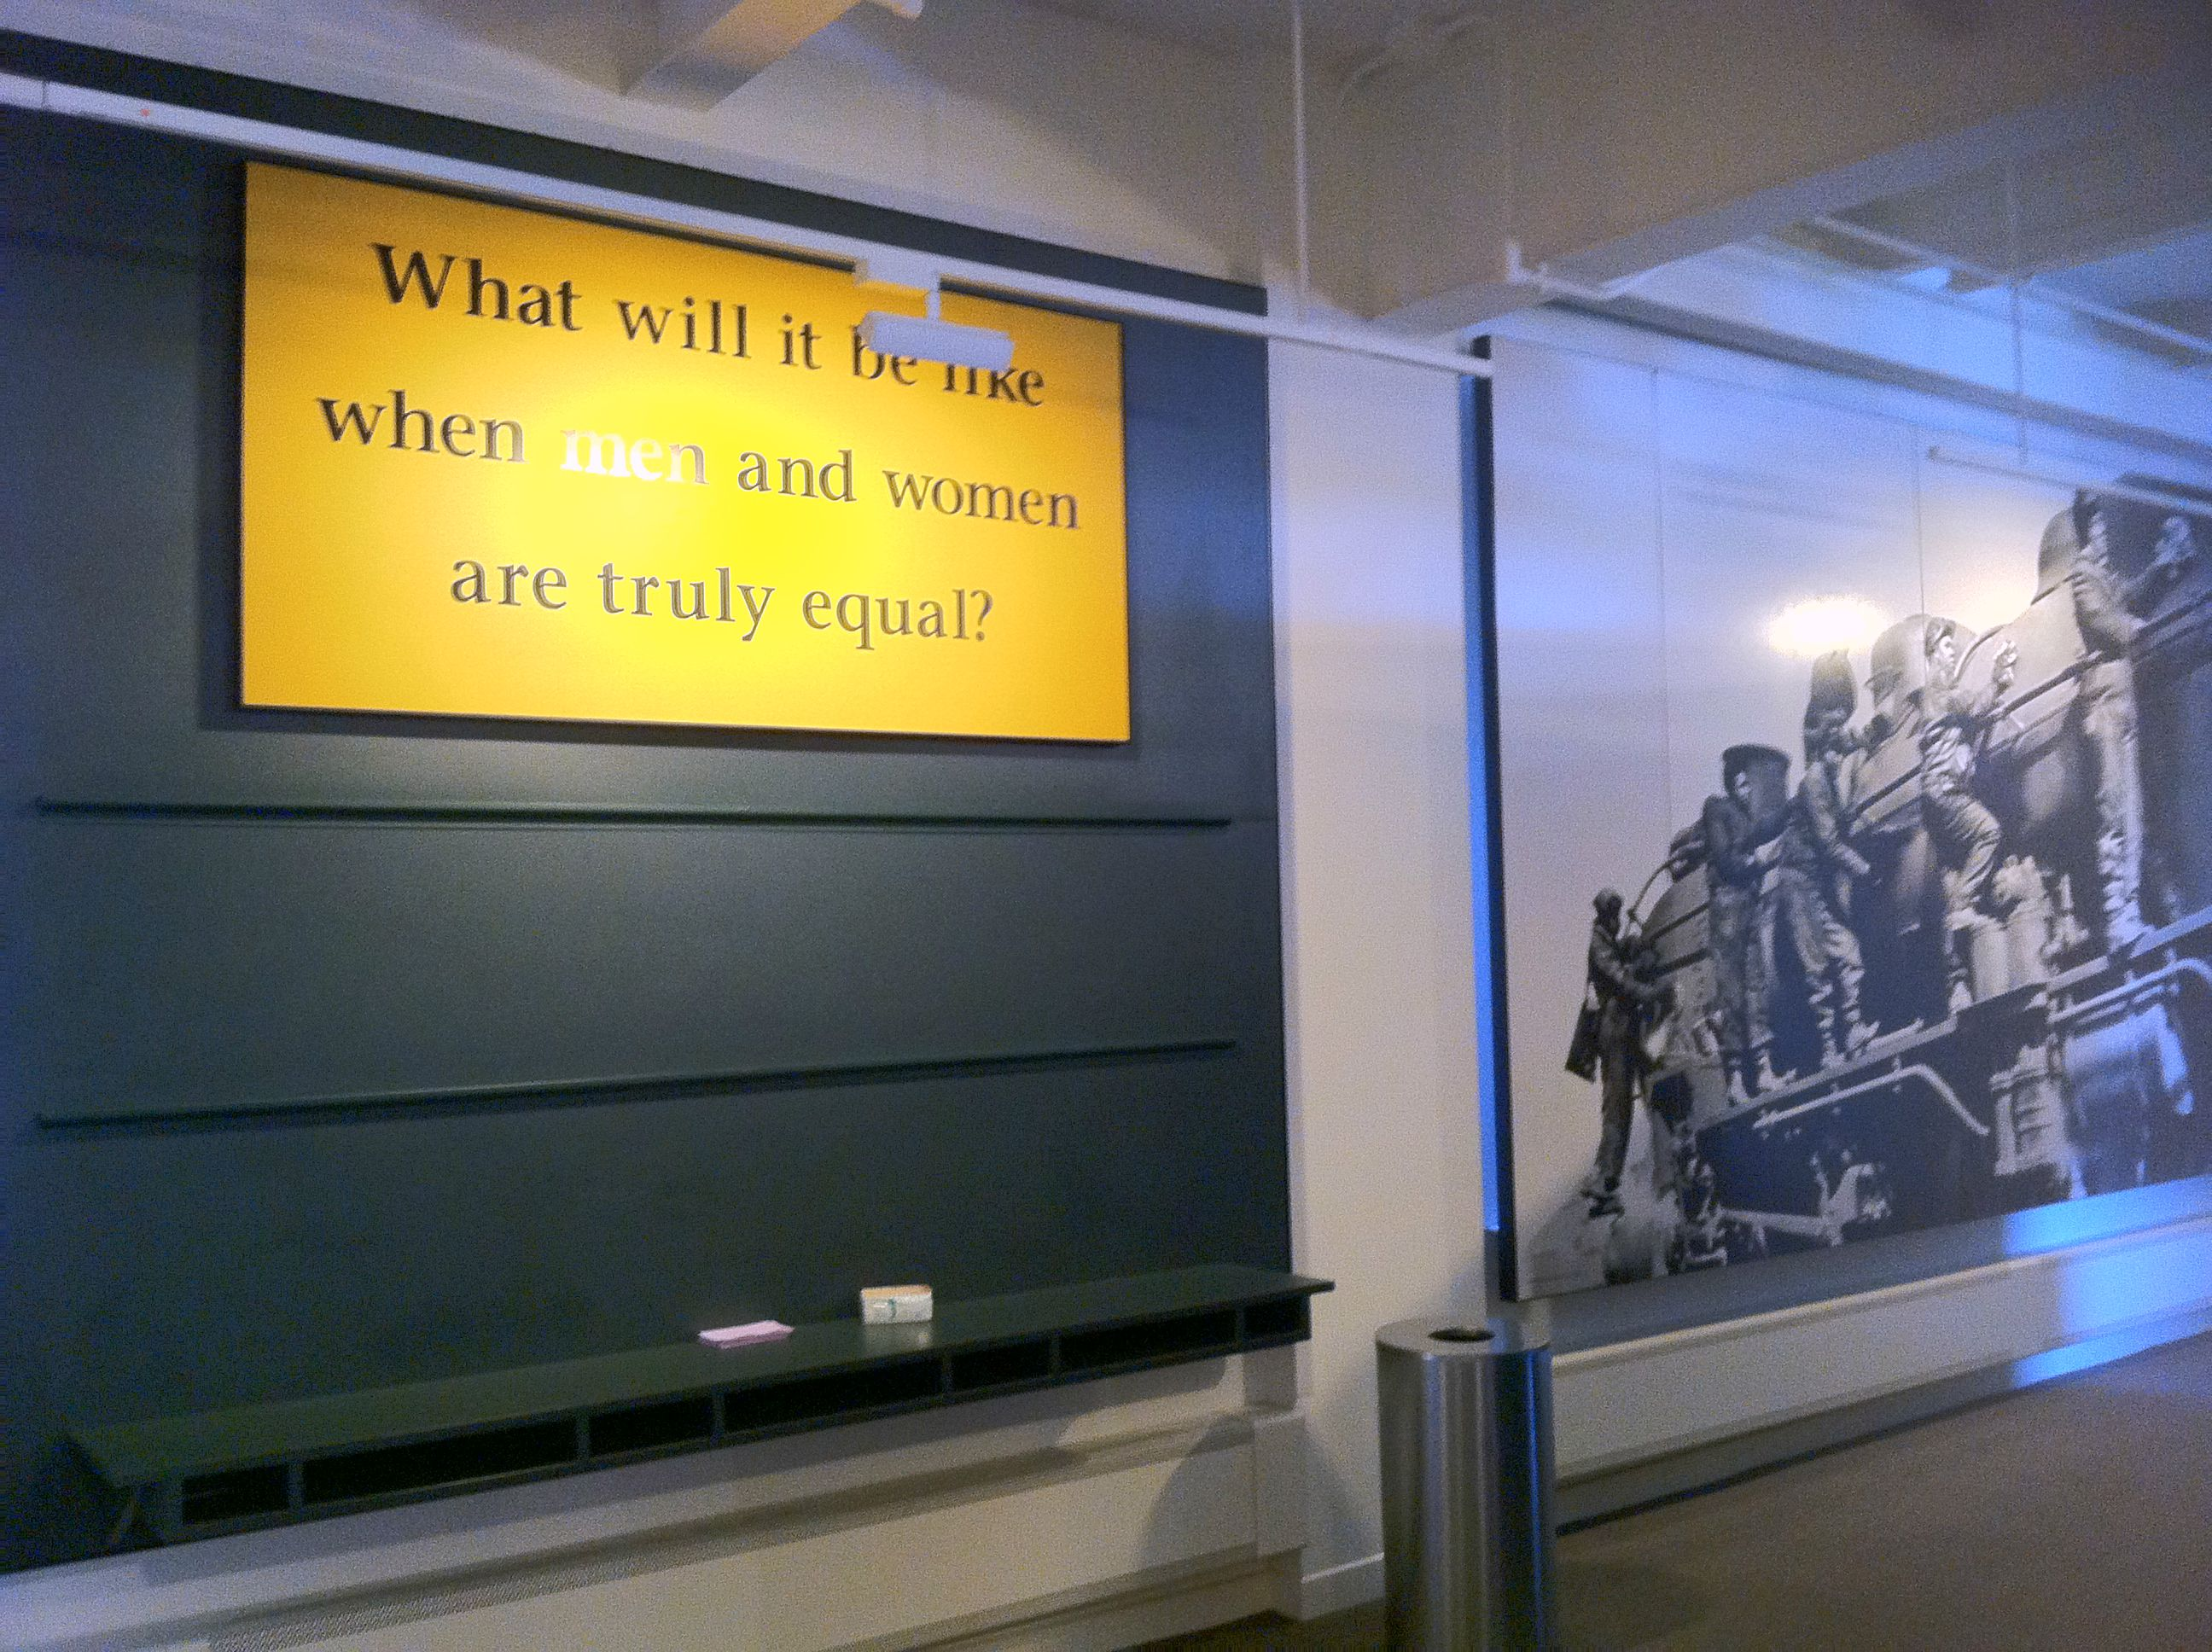 Photograph of a talk-back board at the Women's Rights National Historical Park in Seneca Falls, New York. The question reads: What will it be like when men and women are truly equal?